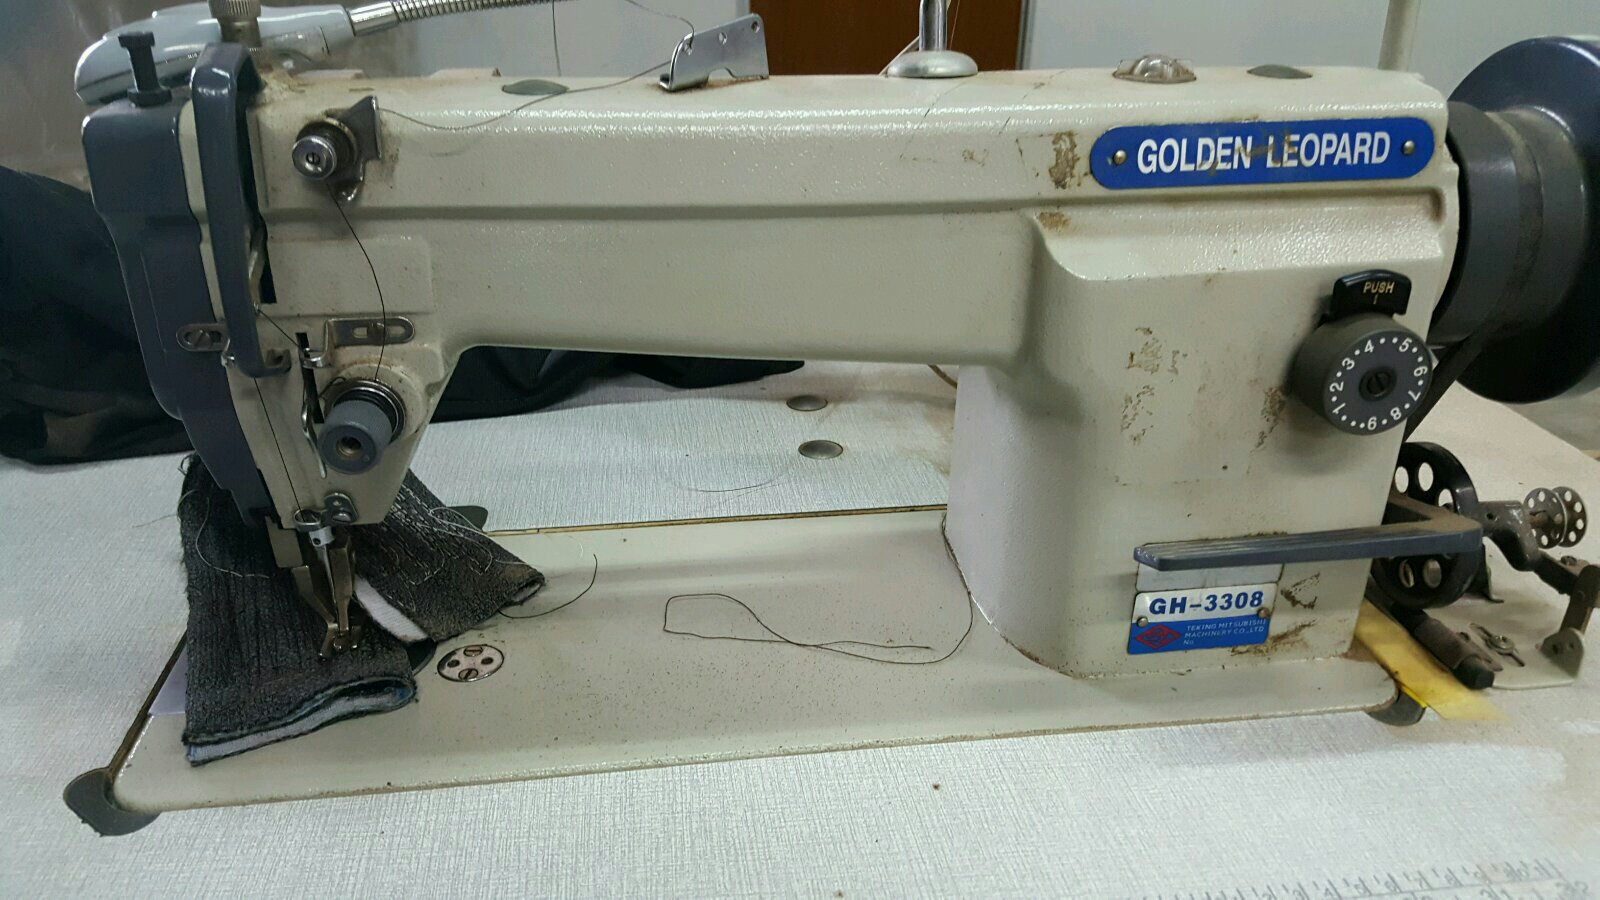 At Area Johor Senai Repai Golden Heavy Duty Lock stitch Machine@@@